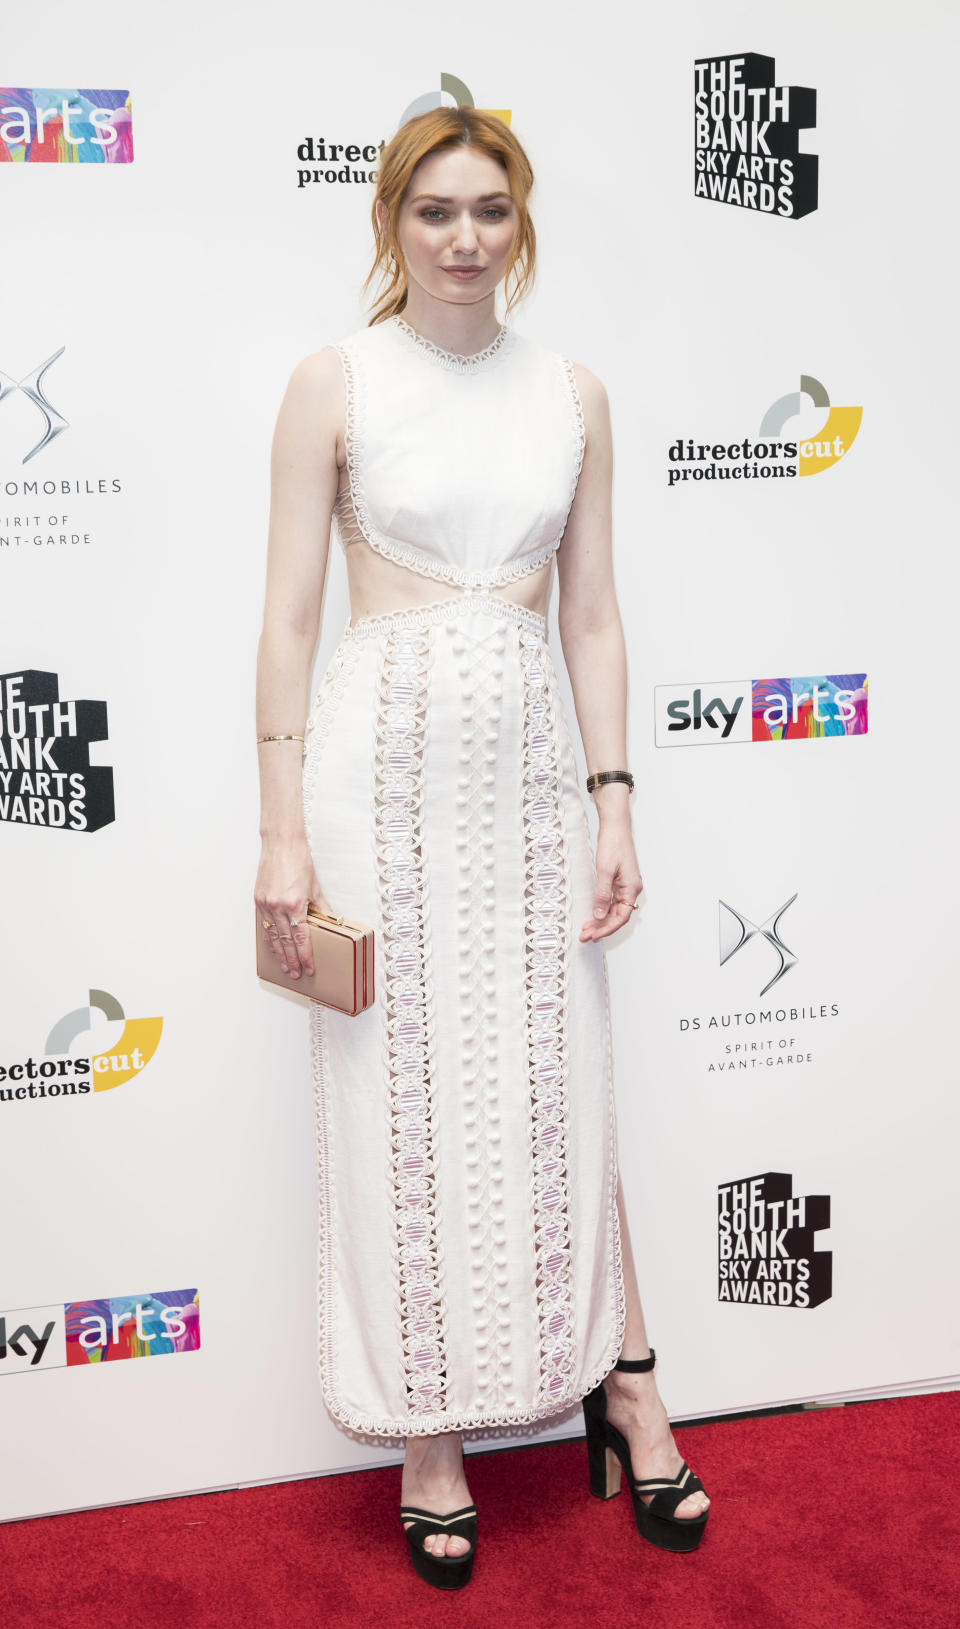 <p>Actress Eleanour Tomlinson arrived at The Southbank Sky Awards on 1 July in a summer-ready lace dress with platforms. <em>[Photo: Getty]</em> </p>